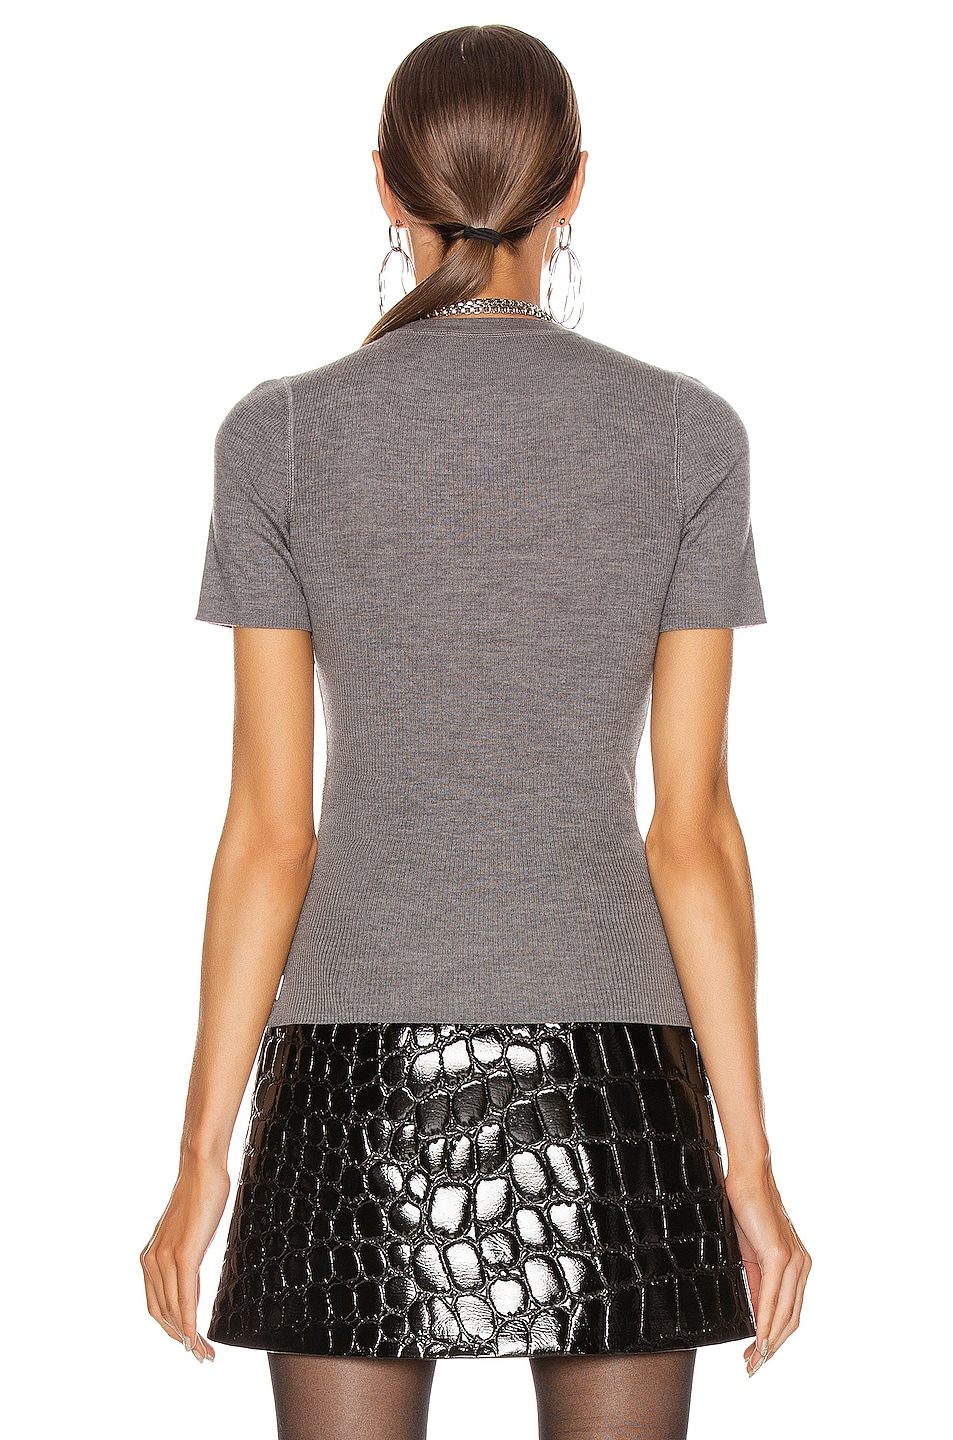 Image 3 of T by Alexander Wang Short Sleeve Knit Top in Heather Grey